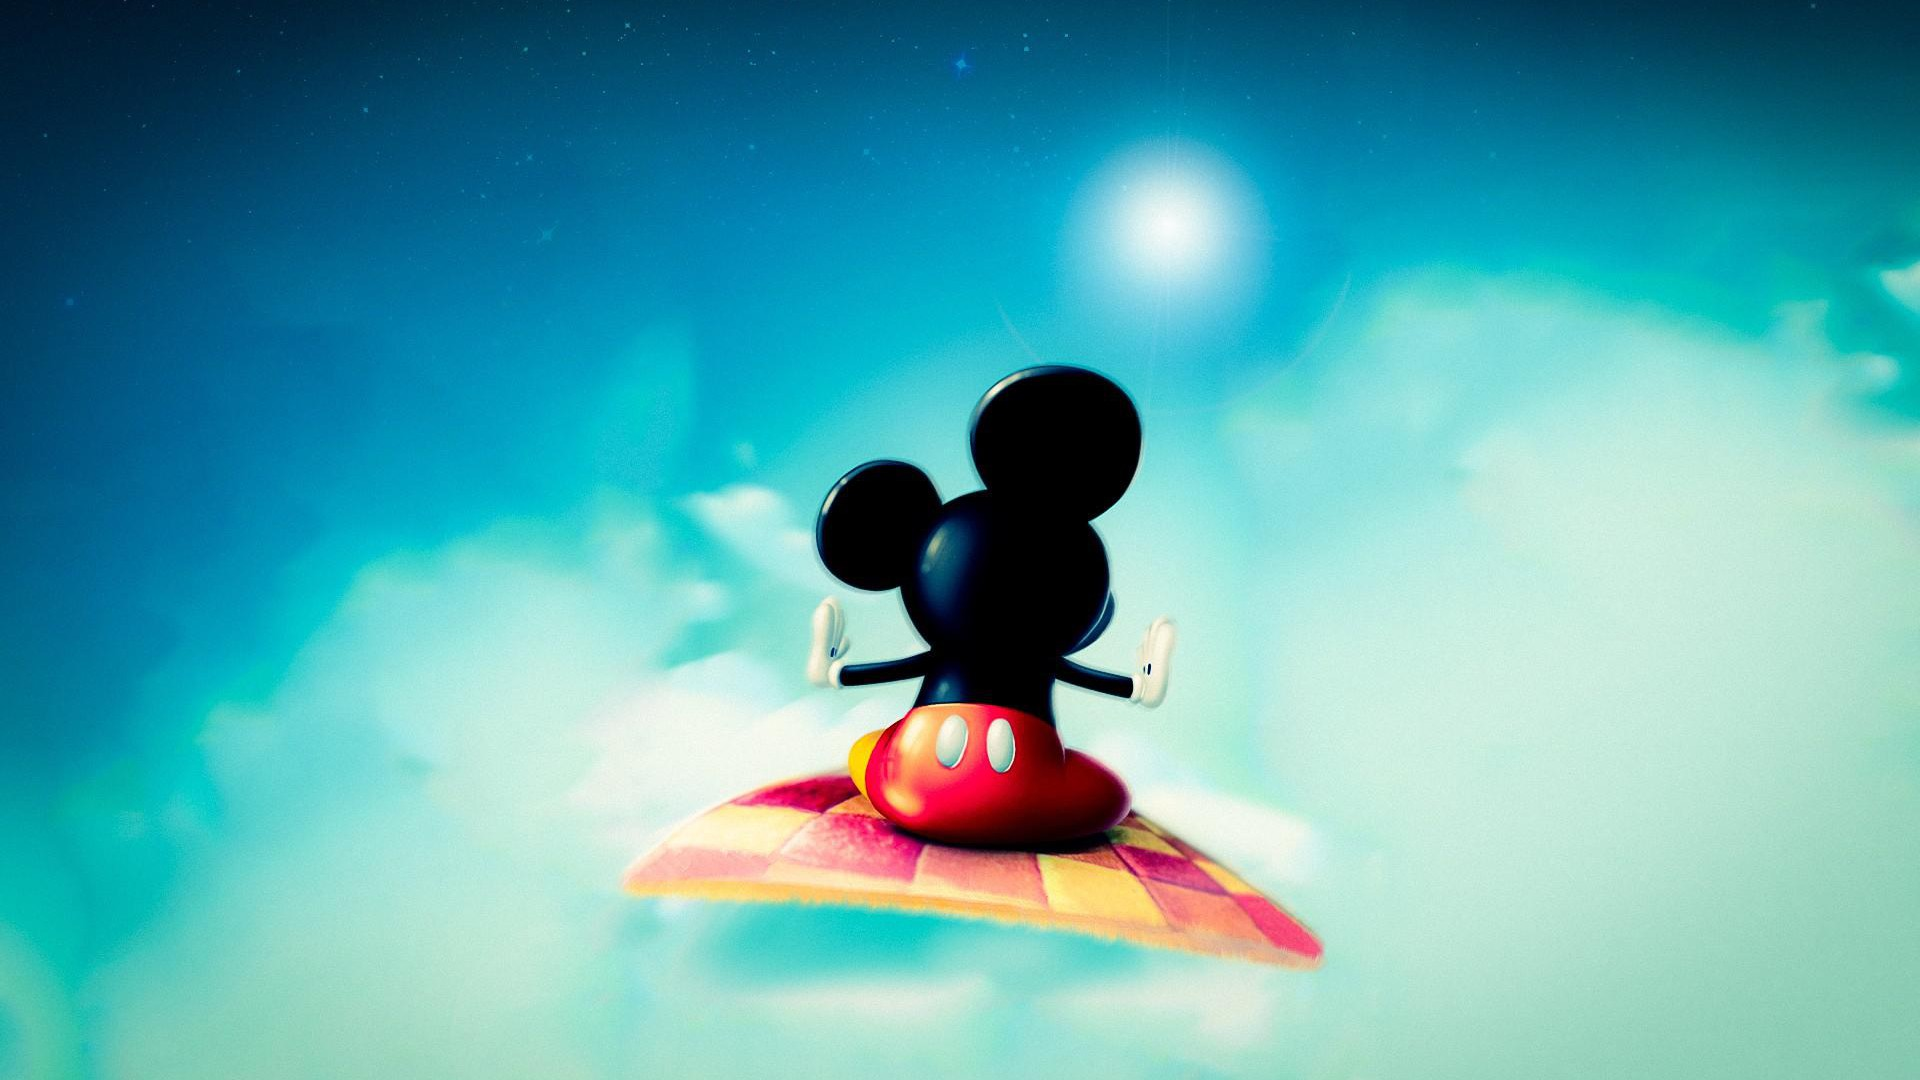 Free Download Fonds Dcran Mikey Souris Disney Ciel Tapis